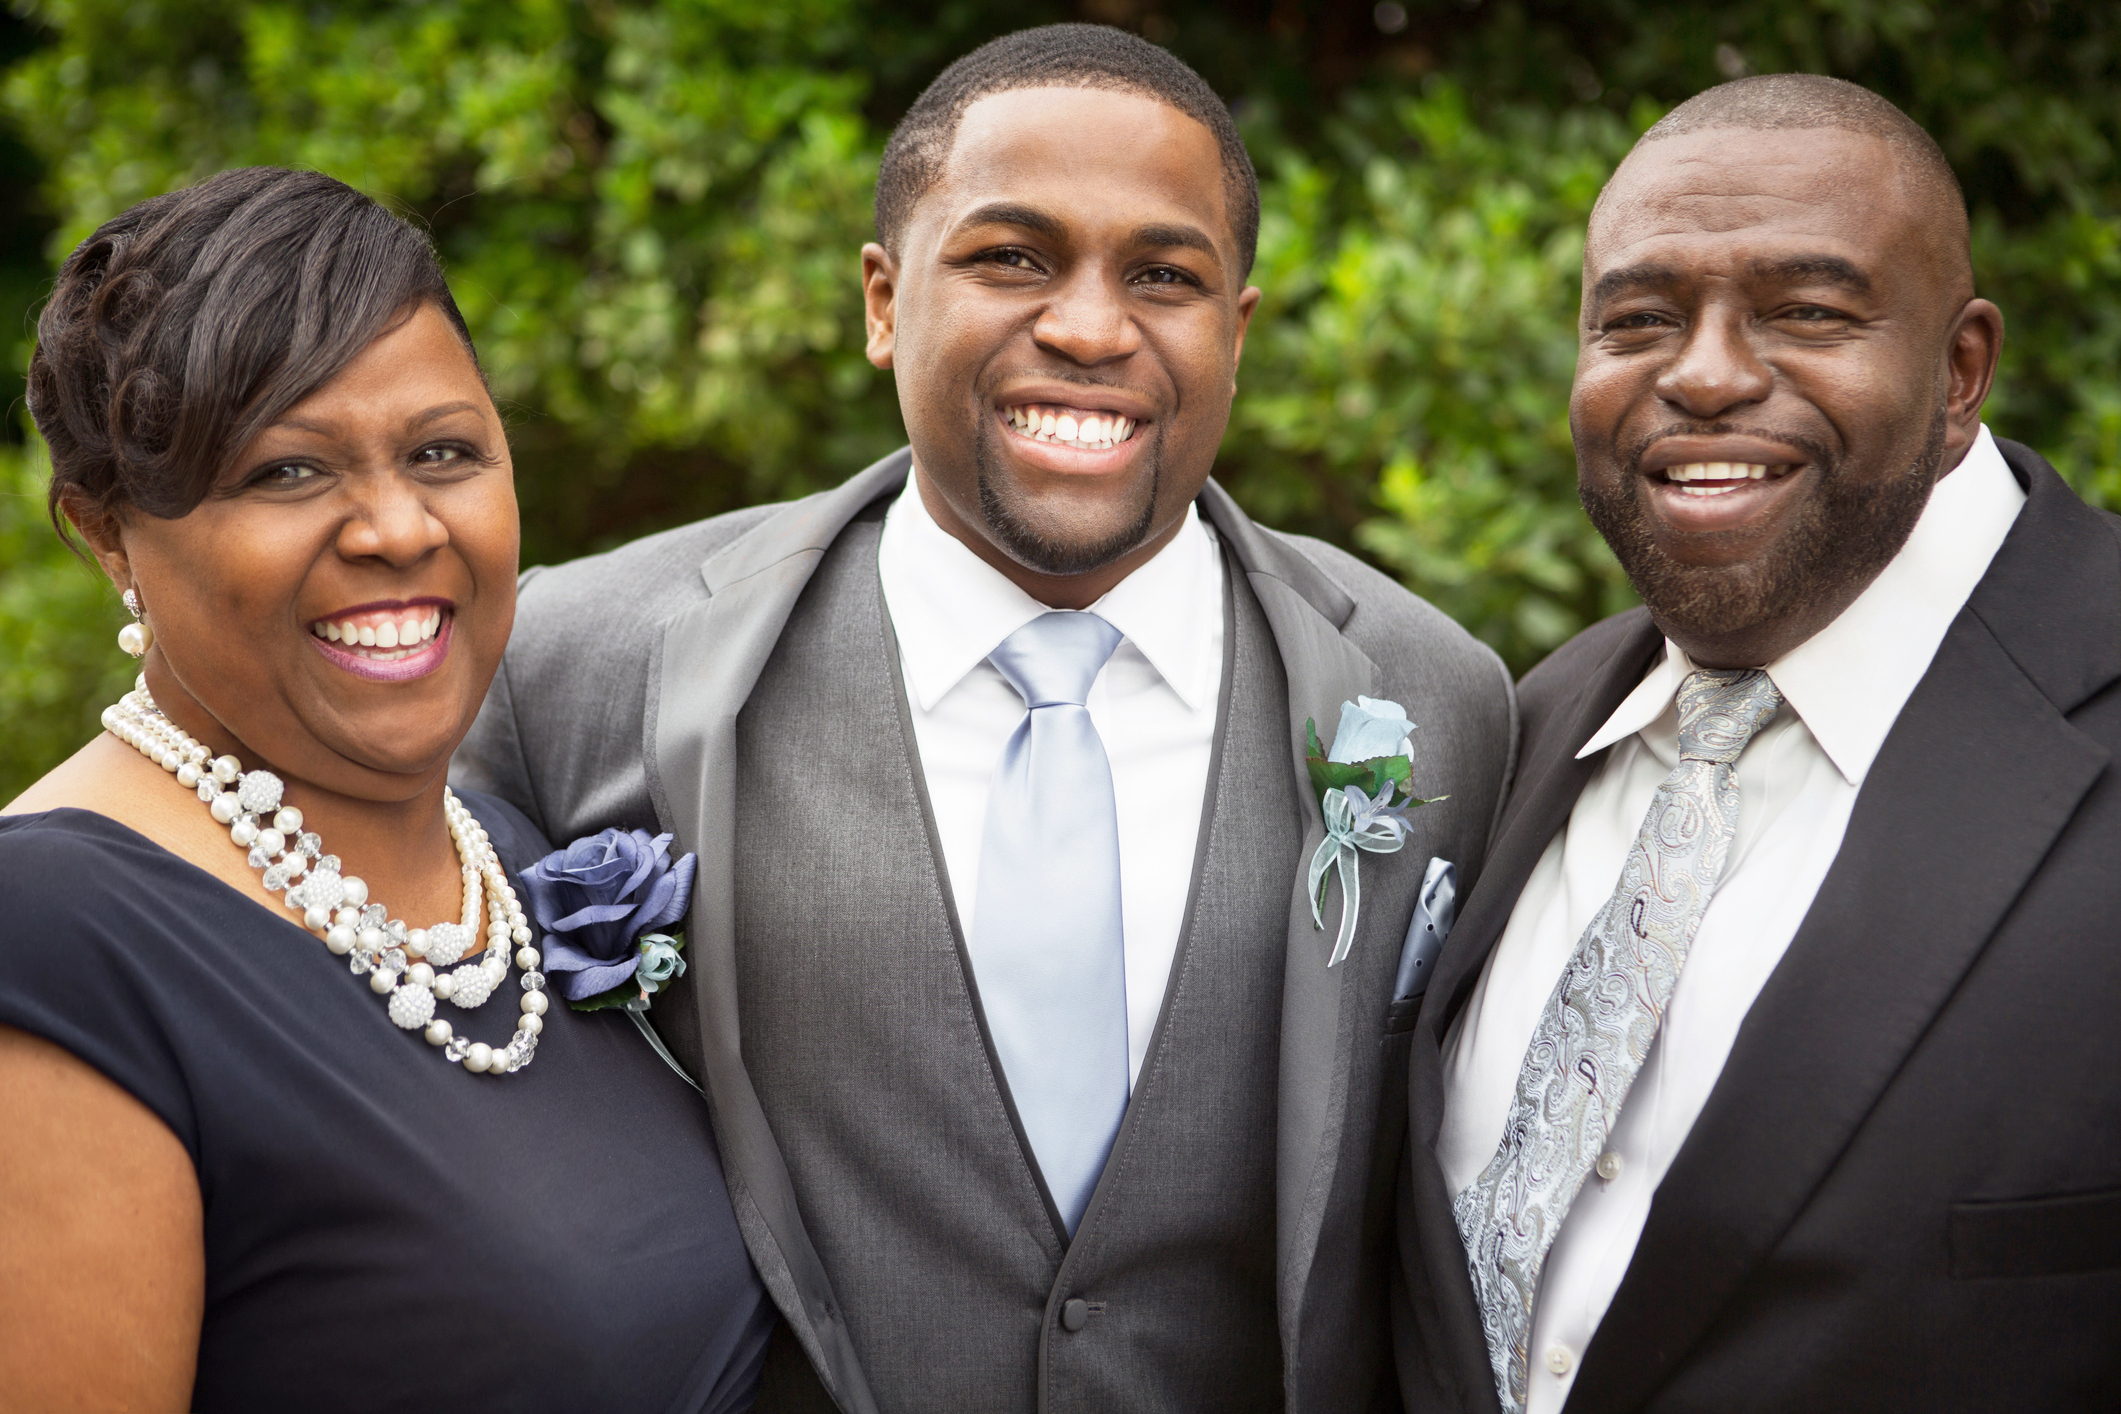 Wedding Etiquette for Parents of the Groom | LoveToKnow